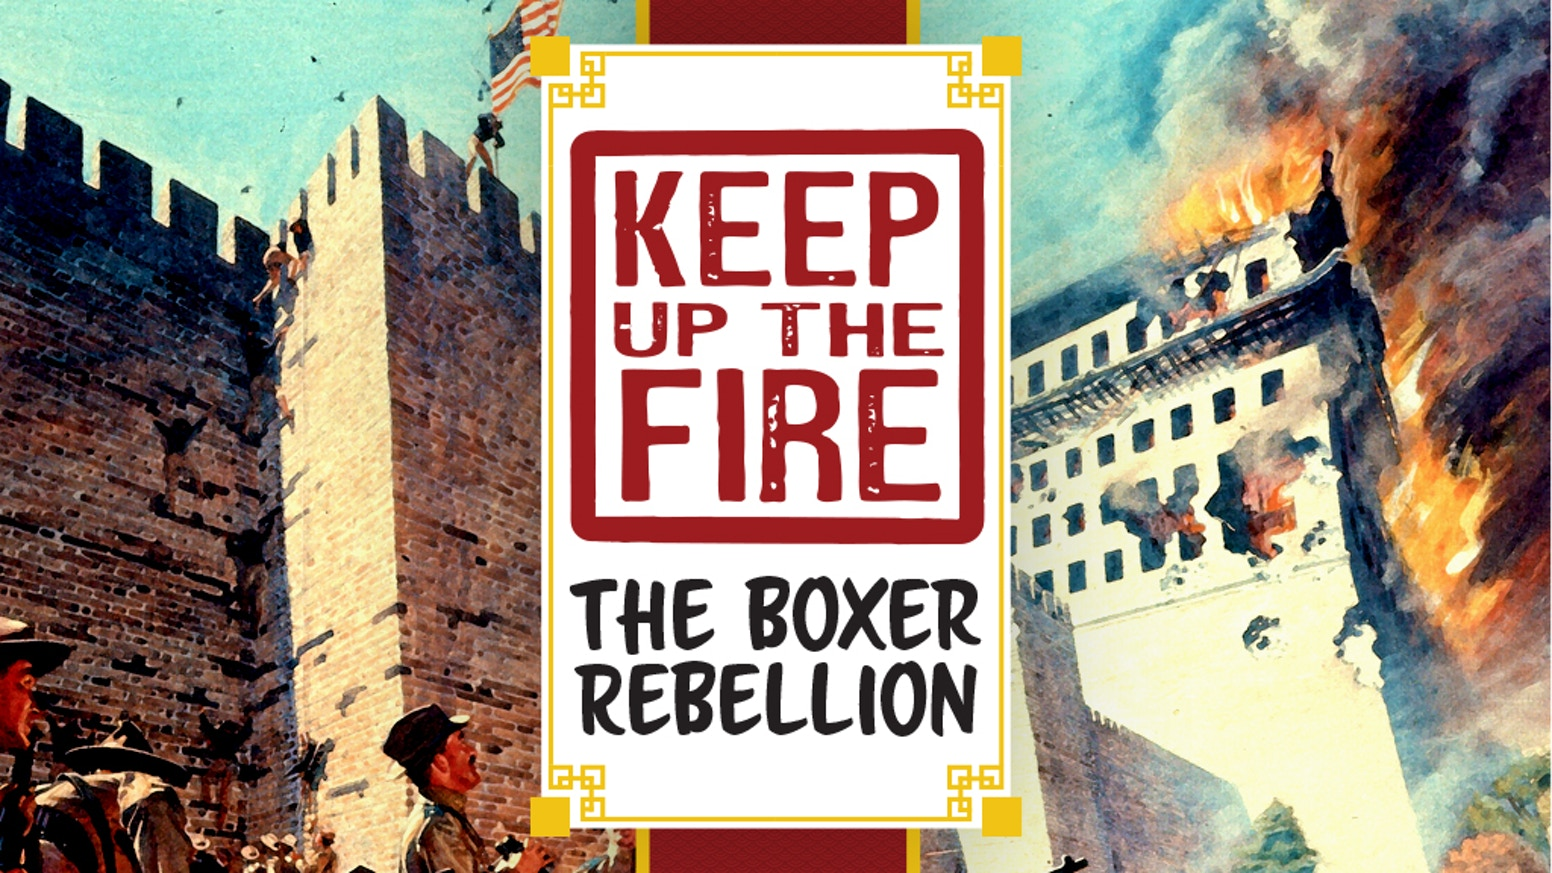 A refreshed deluxe version of KEEP OF THE FIRE! Solitaire game by John Welch on the Boxer Rebellion 1900.  Plays in 45 minutes.